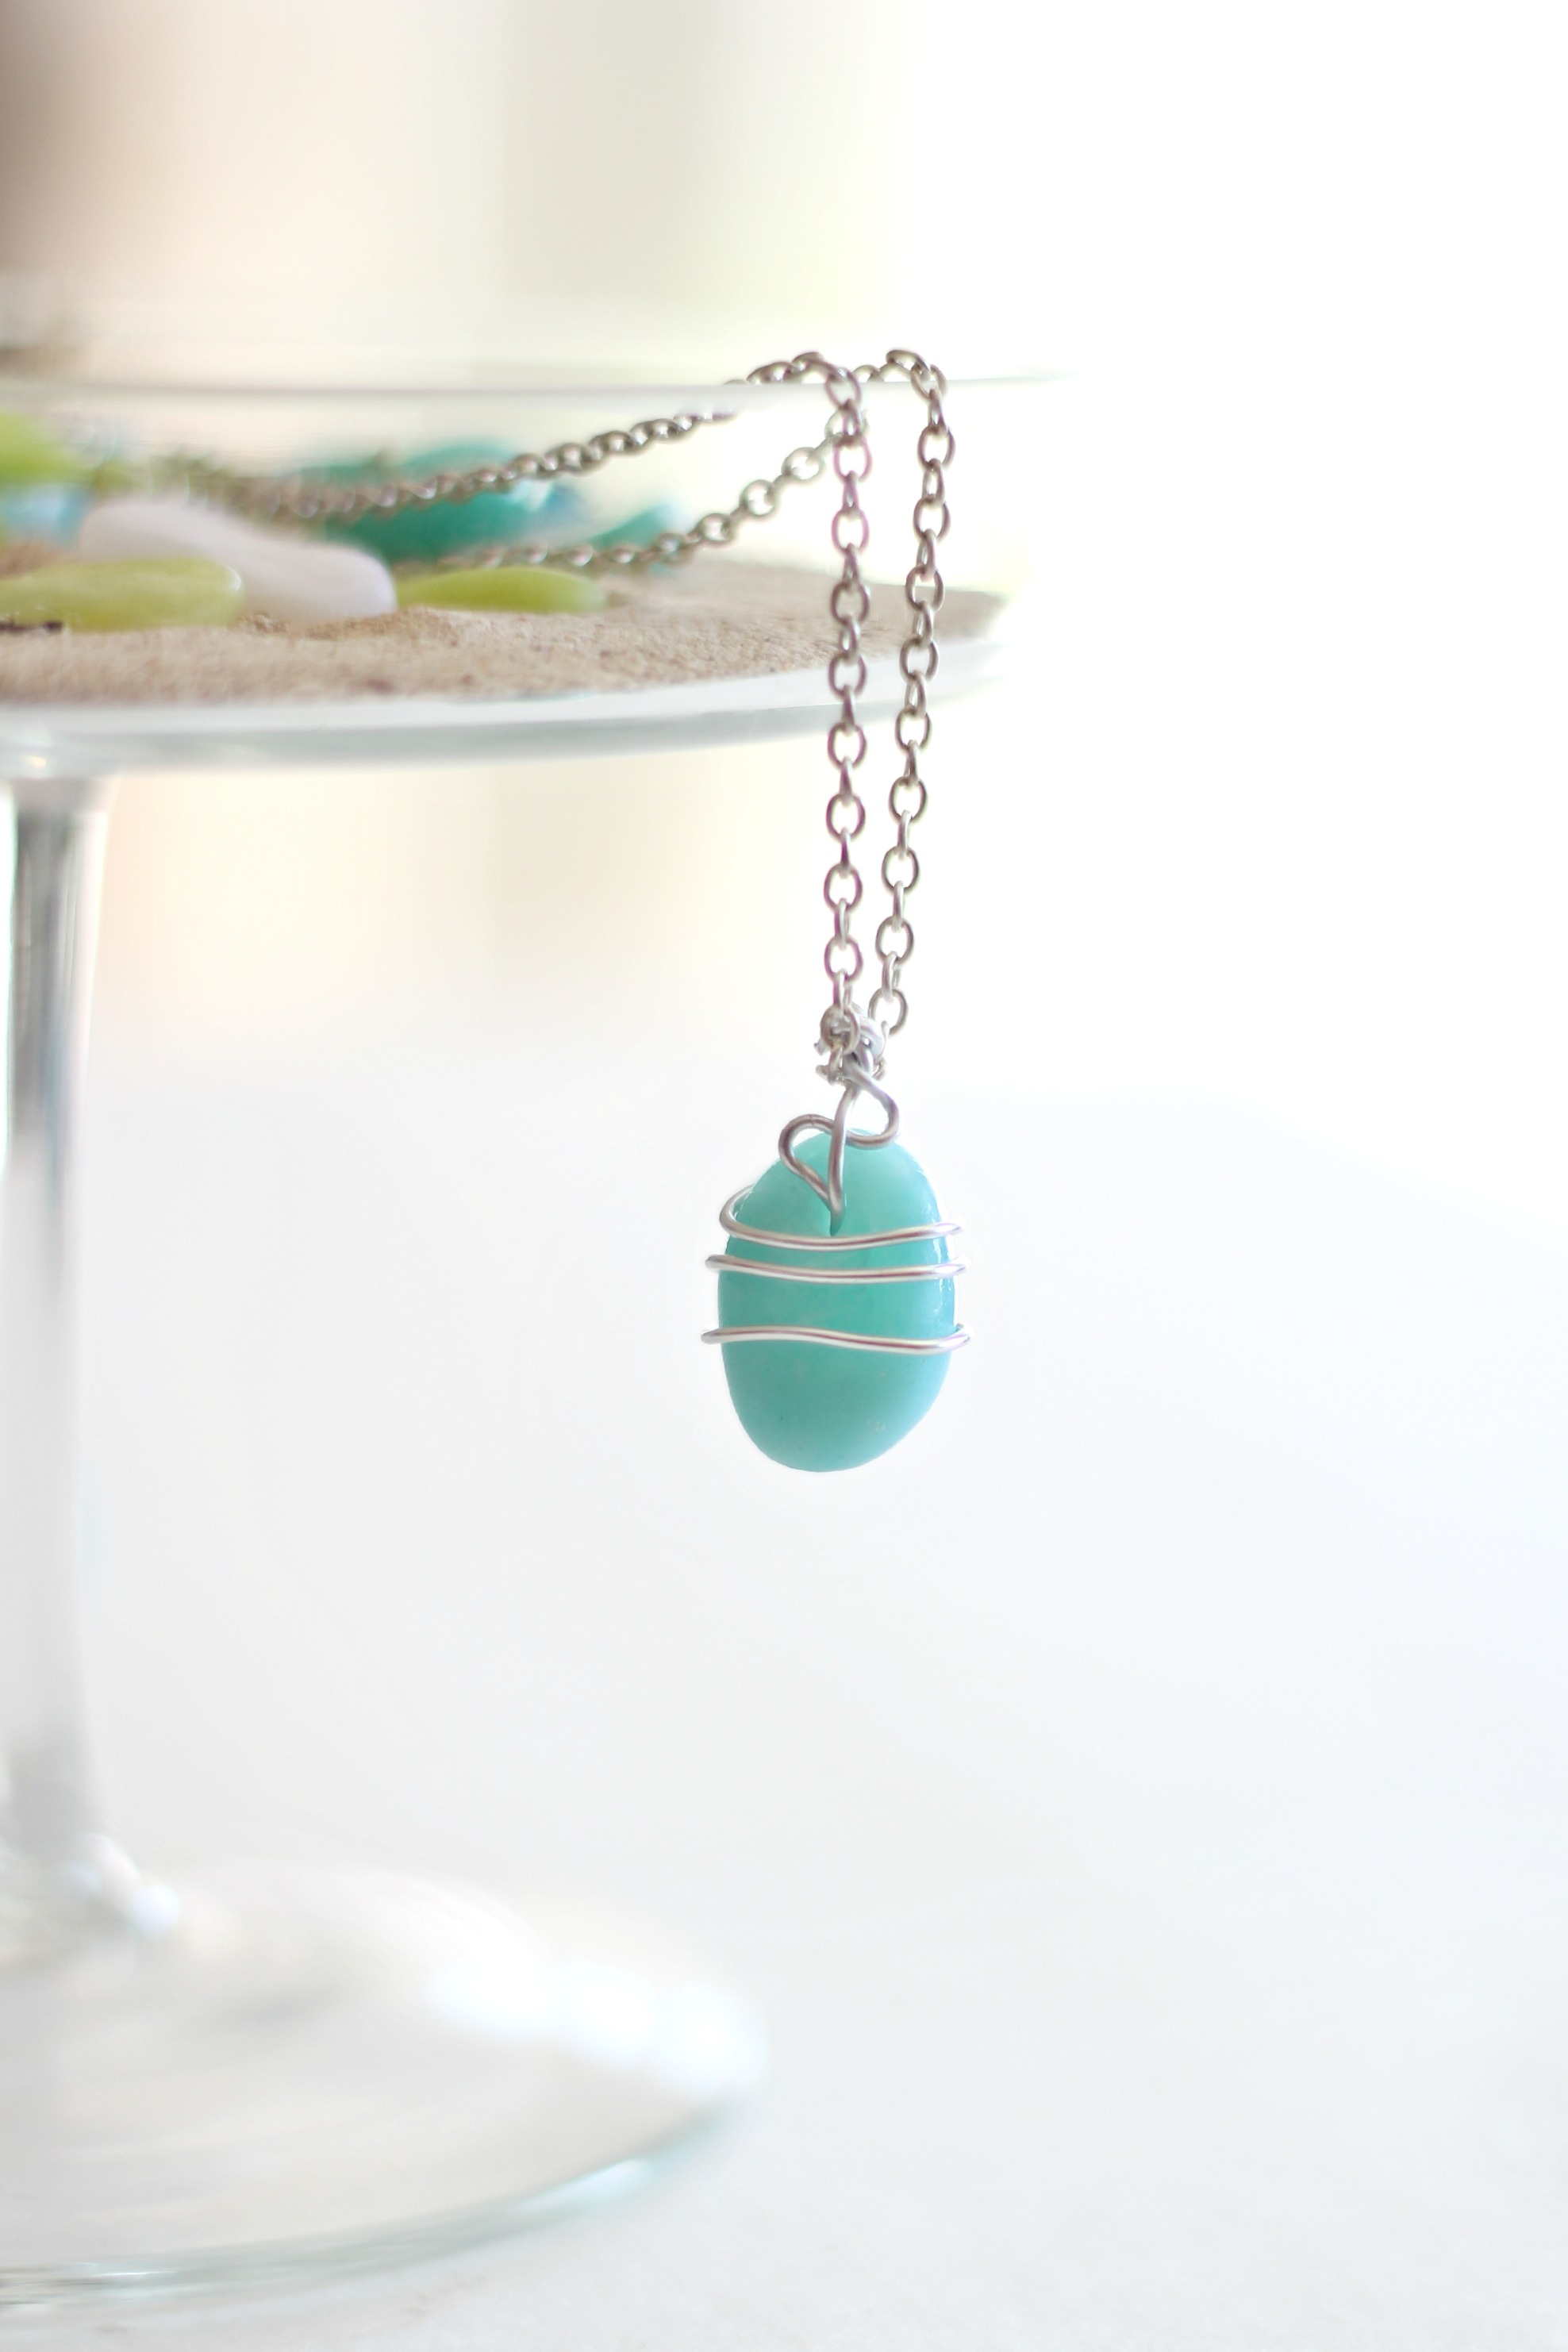 How to make faux sea glass with Polymer Clay